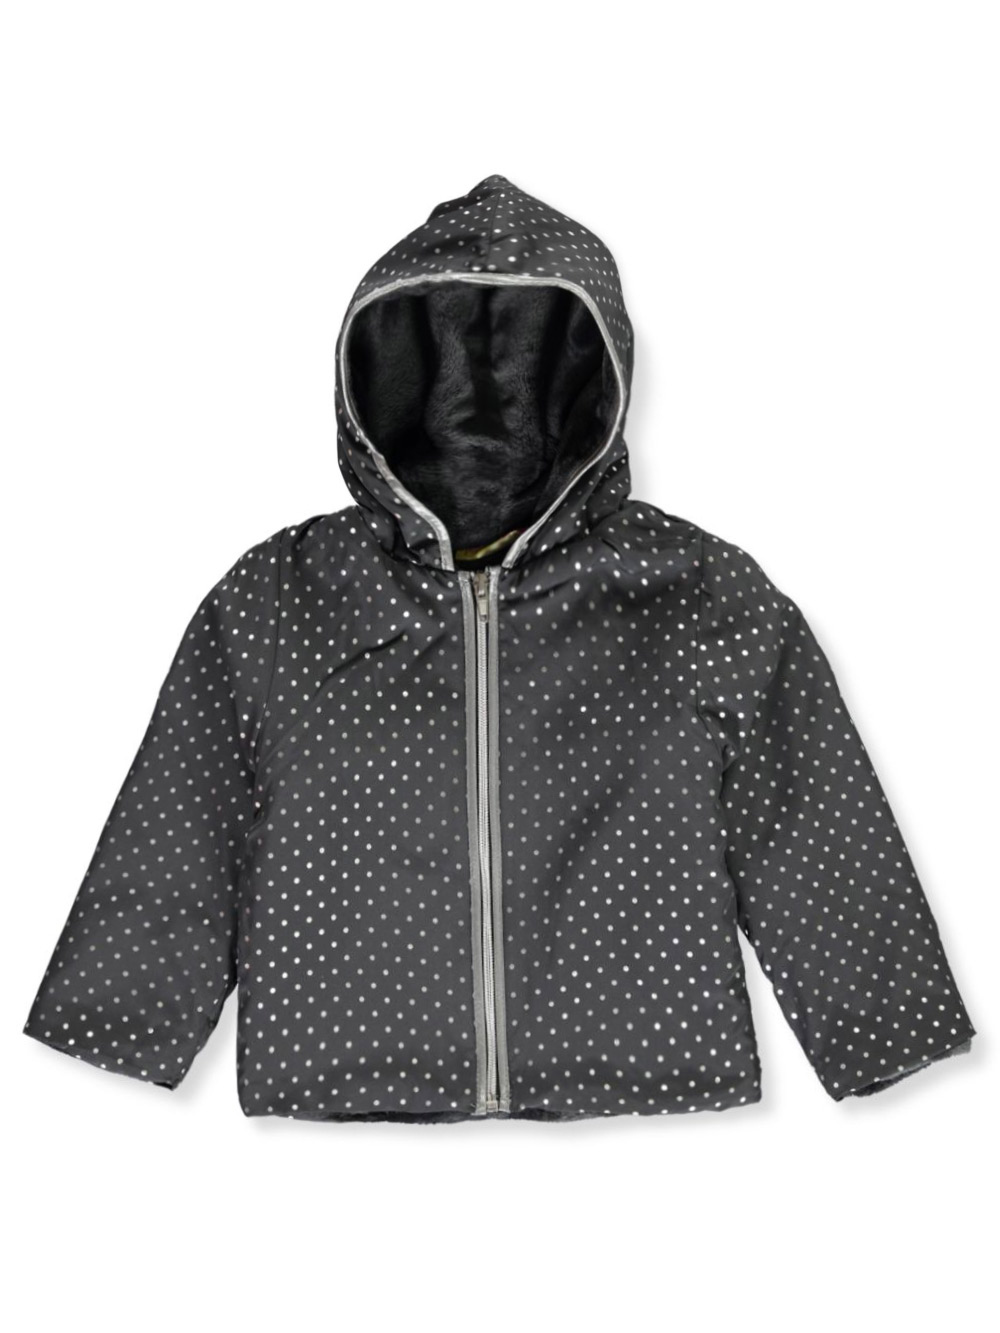 Girls Charcoal Jackets